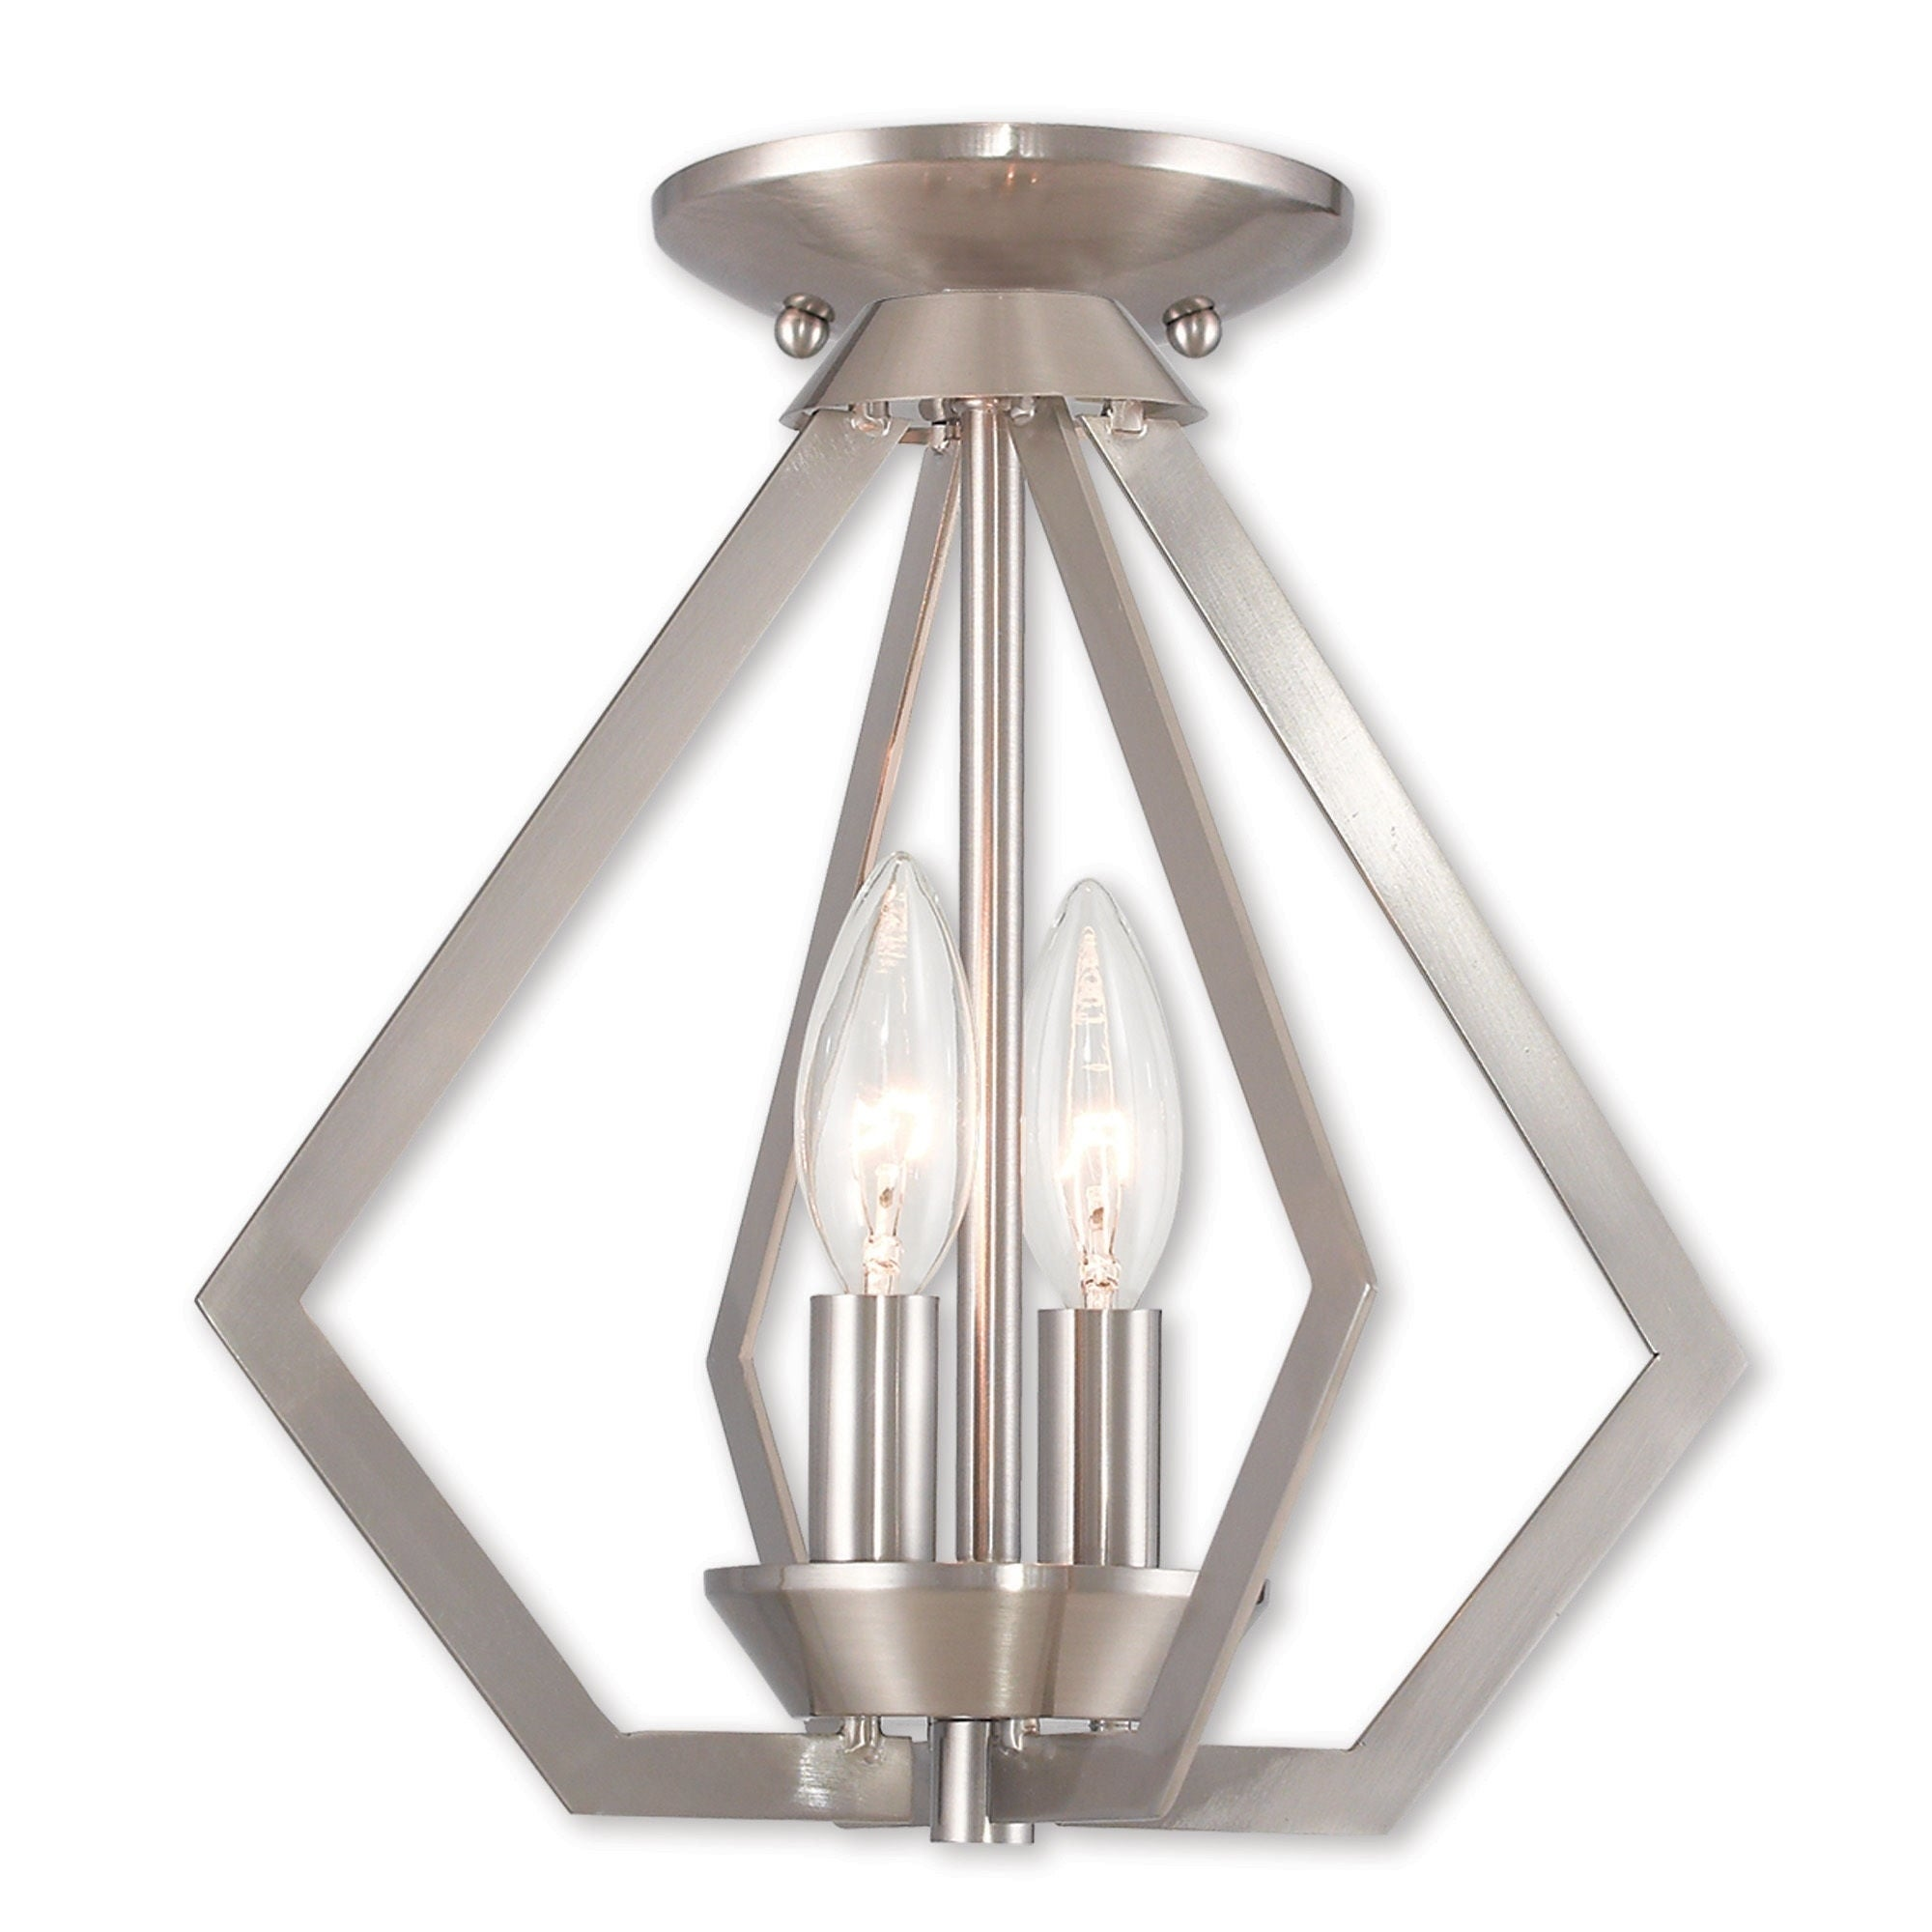 Livex lighting prism 2 light pendant free shipping today livex lighting prism 2 light pendant free shipping today overstock 21168351 arubaitofo Gallery